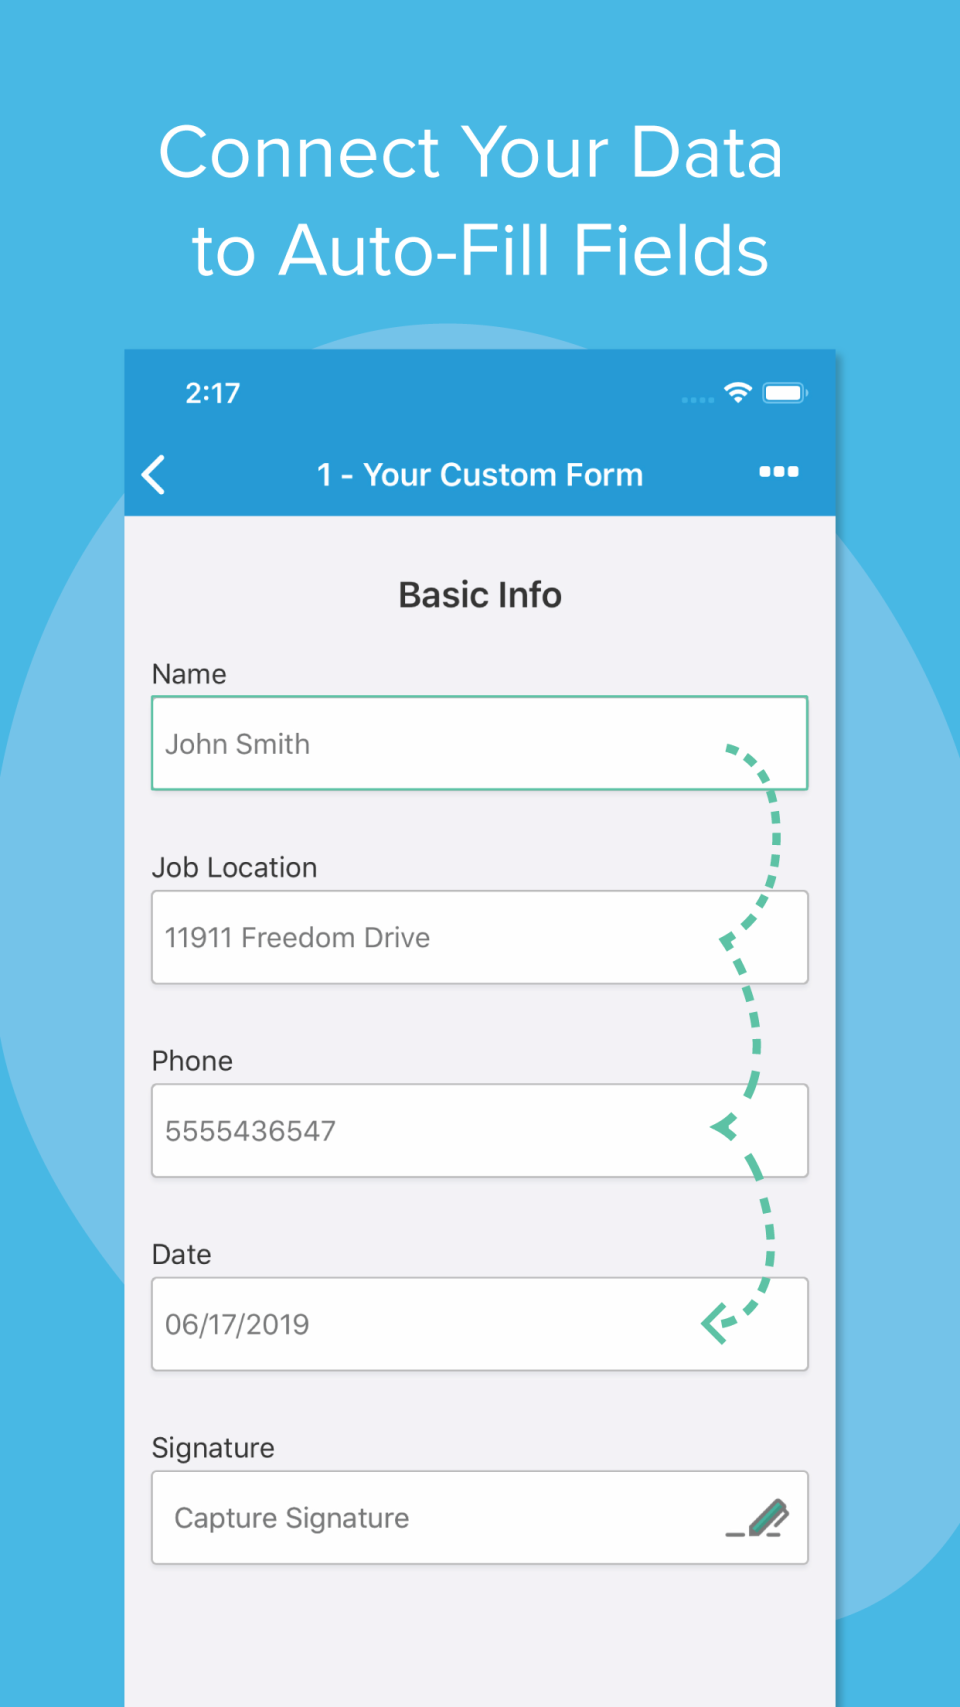 Connect Your Data to Auto-Fill Fields